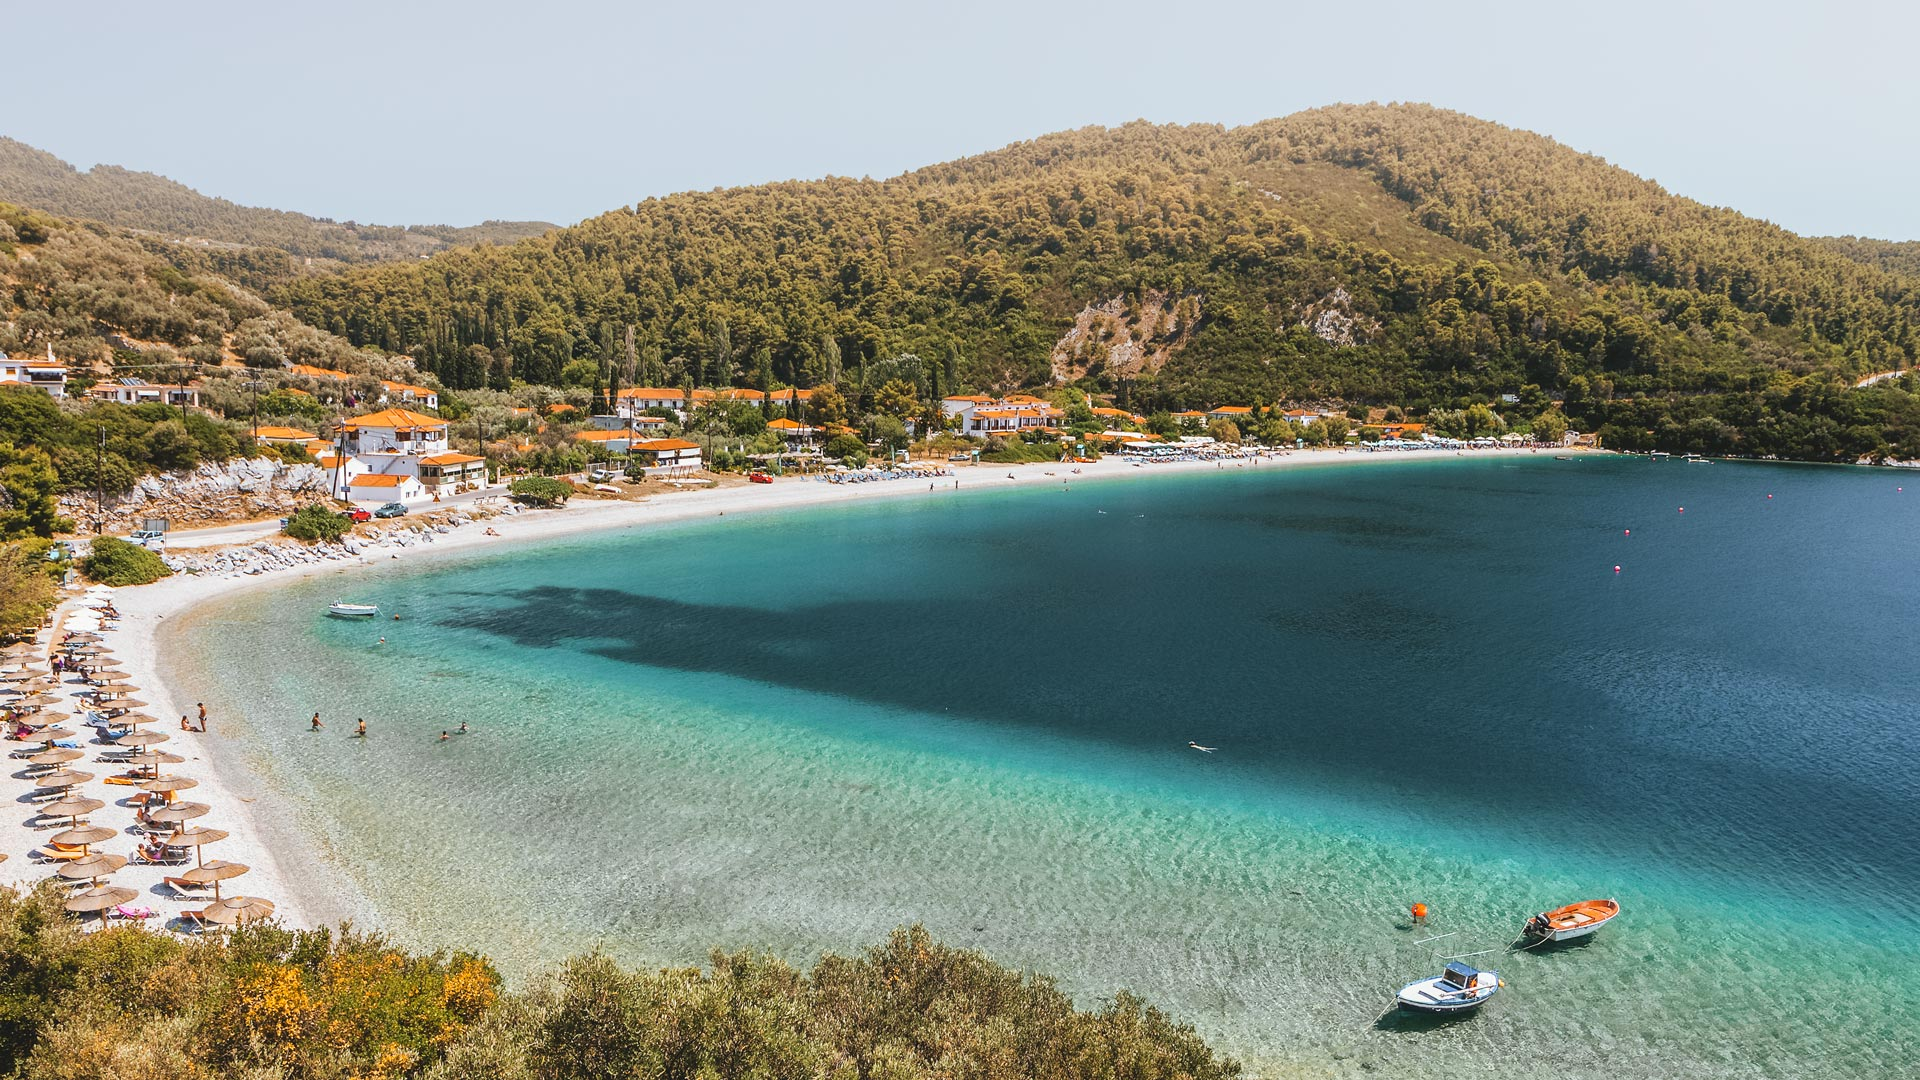 In a setting of tranquil green and blue, Panormos is one of the most welcoming beaches in Skopelos